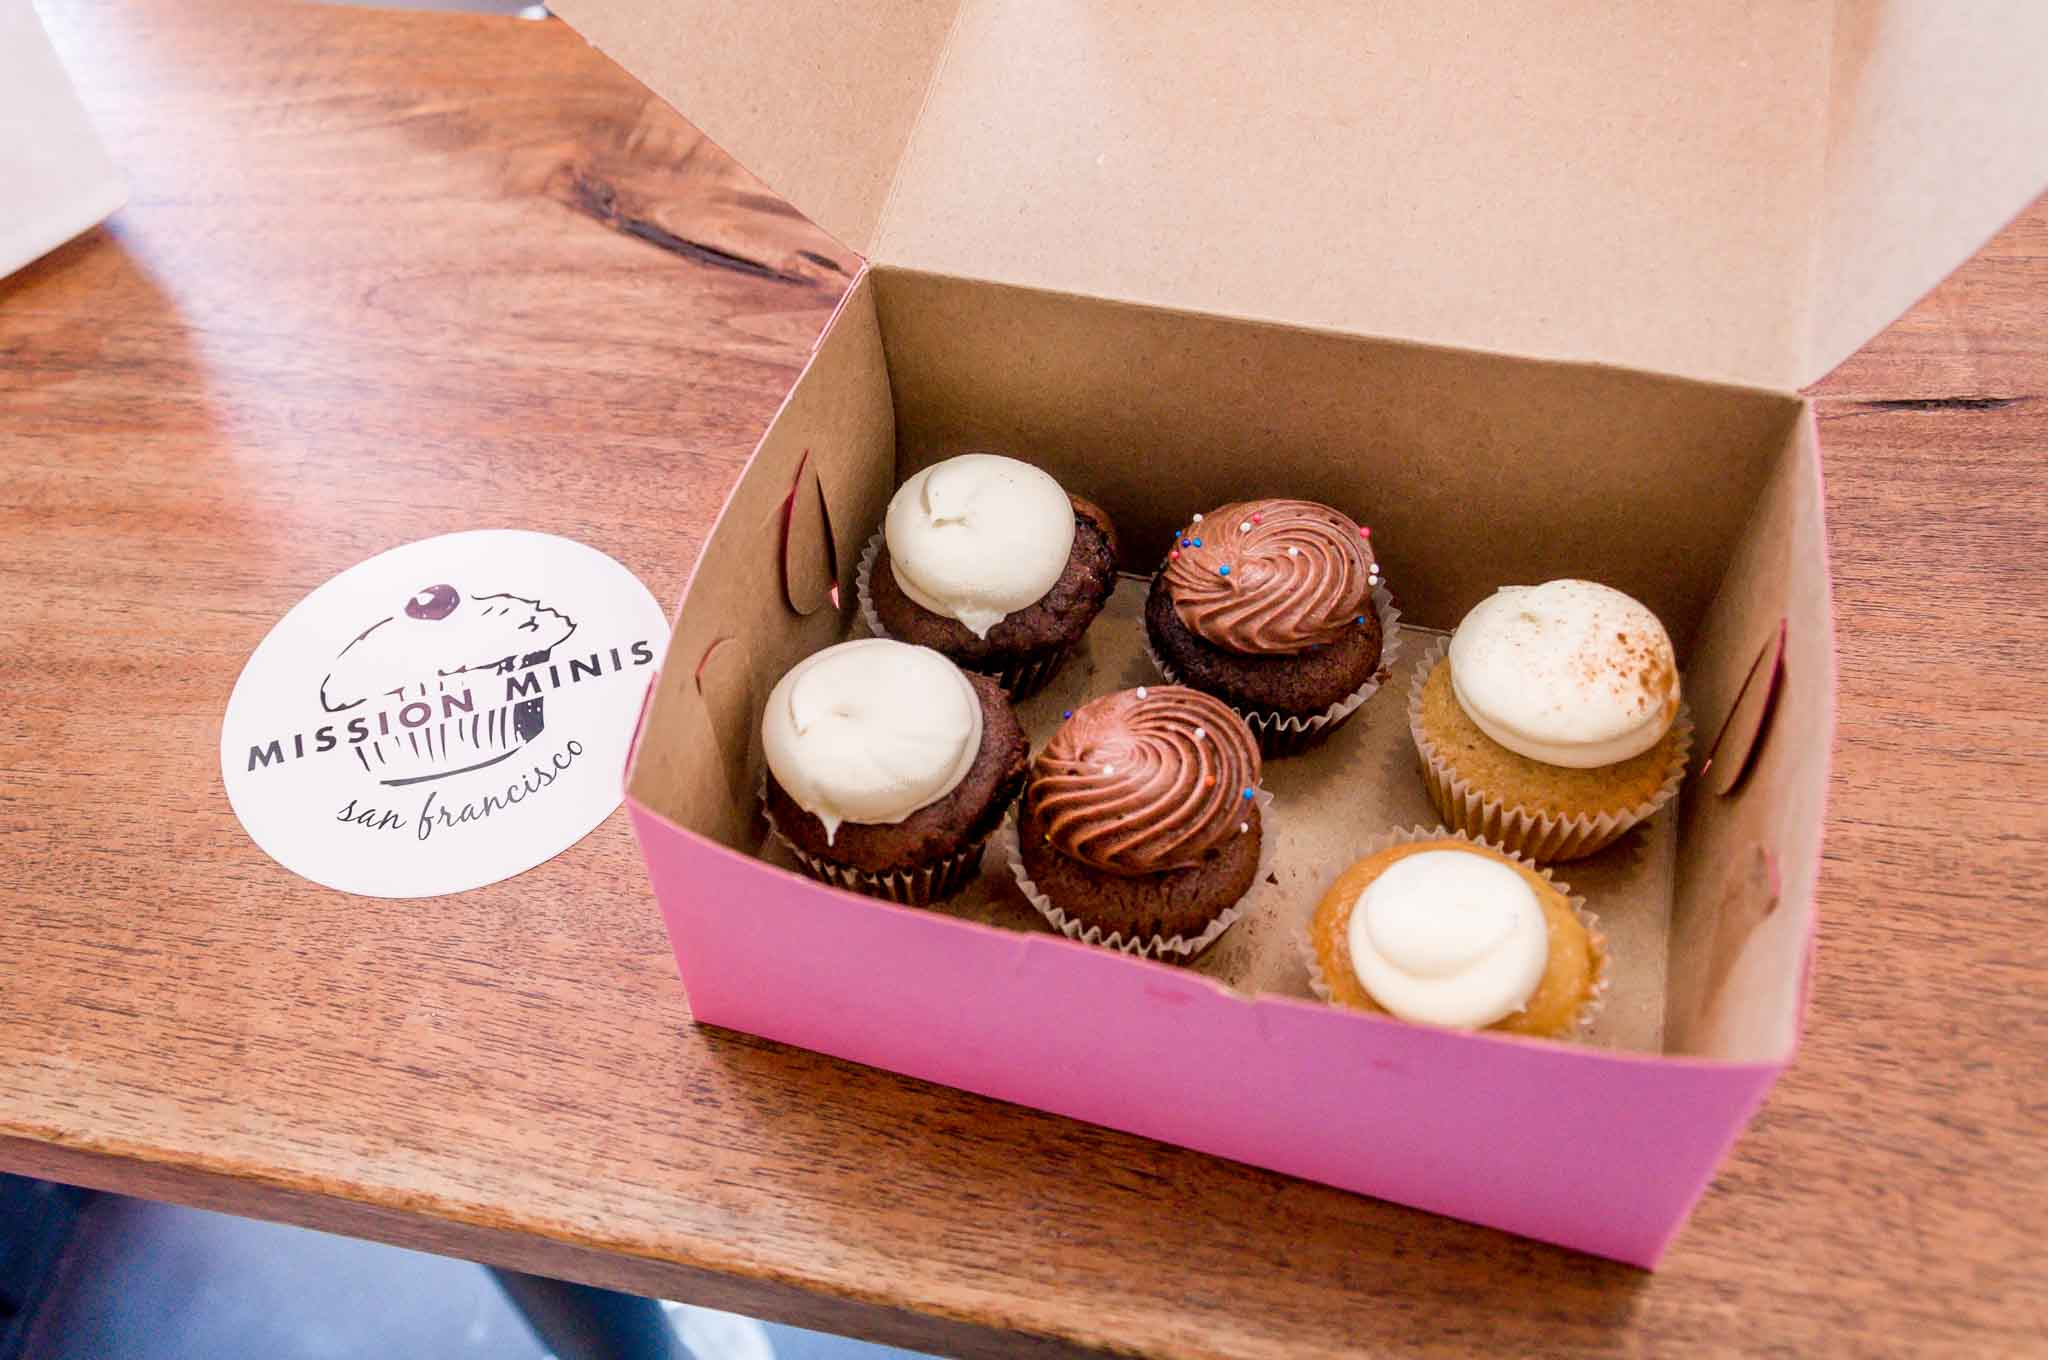 Box full of mini cupcakes from Mission Minis